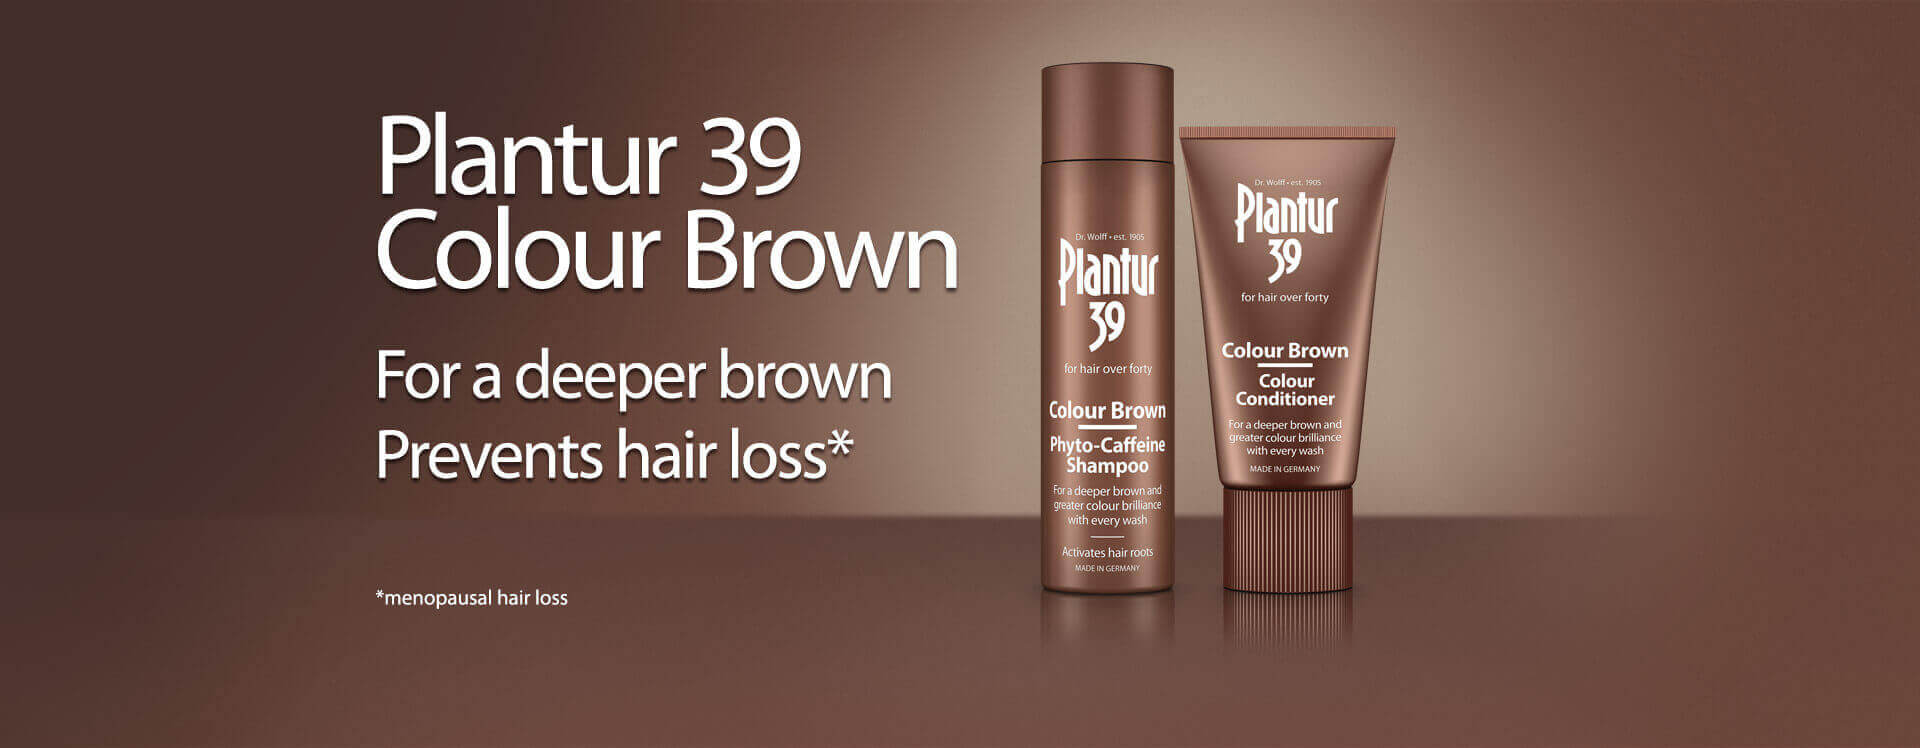 Plantur 39 Colour Brown for a deeper brown